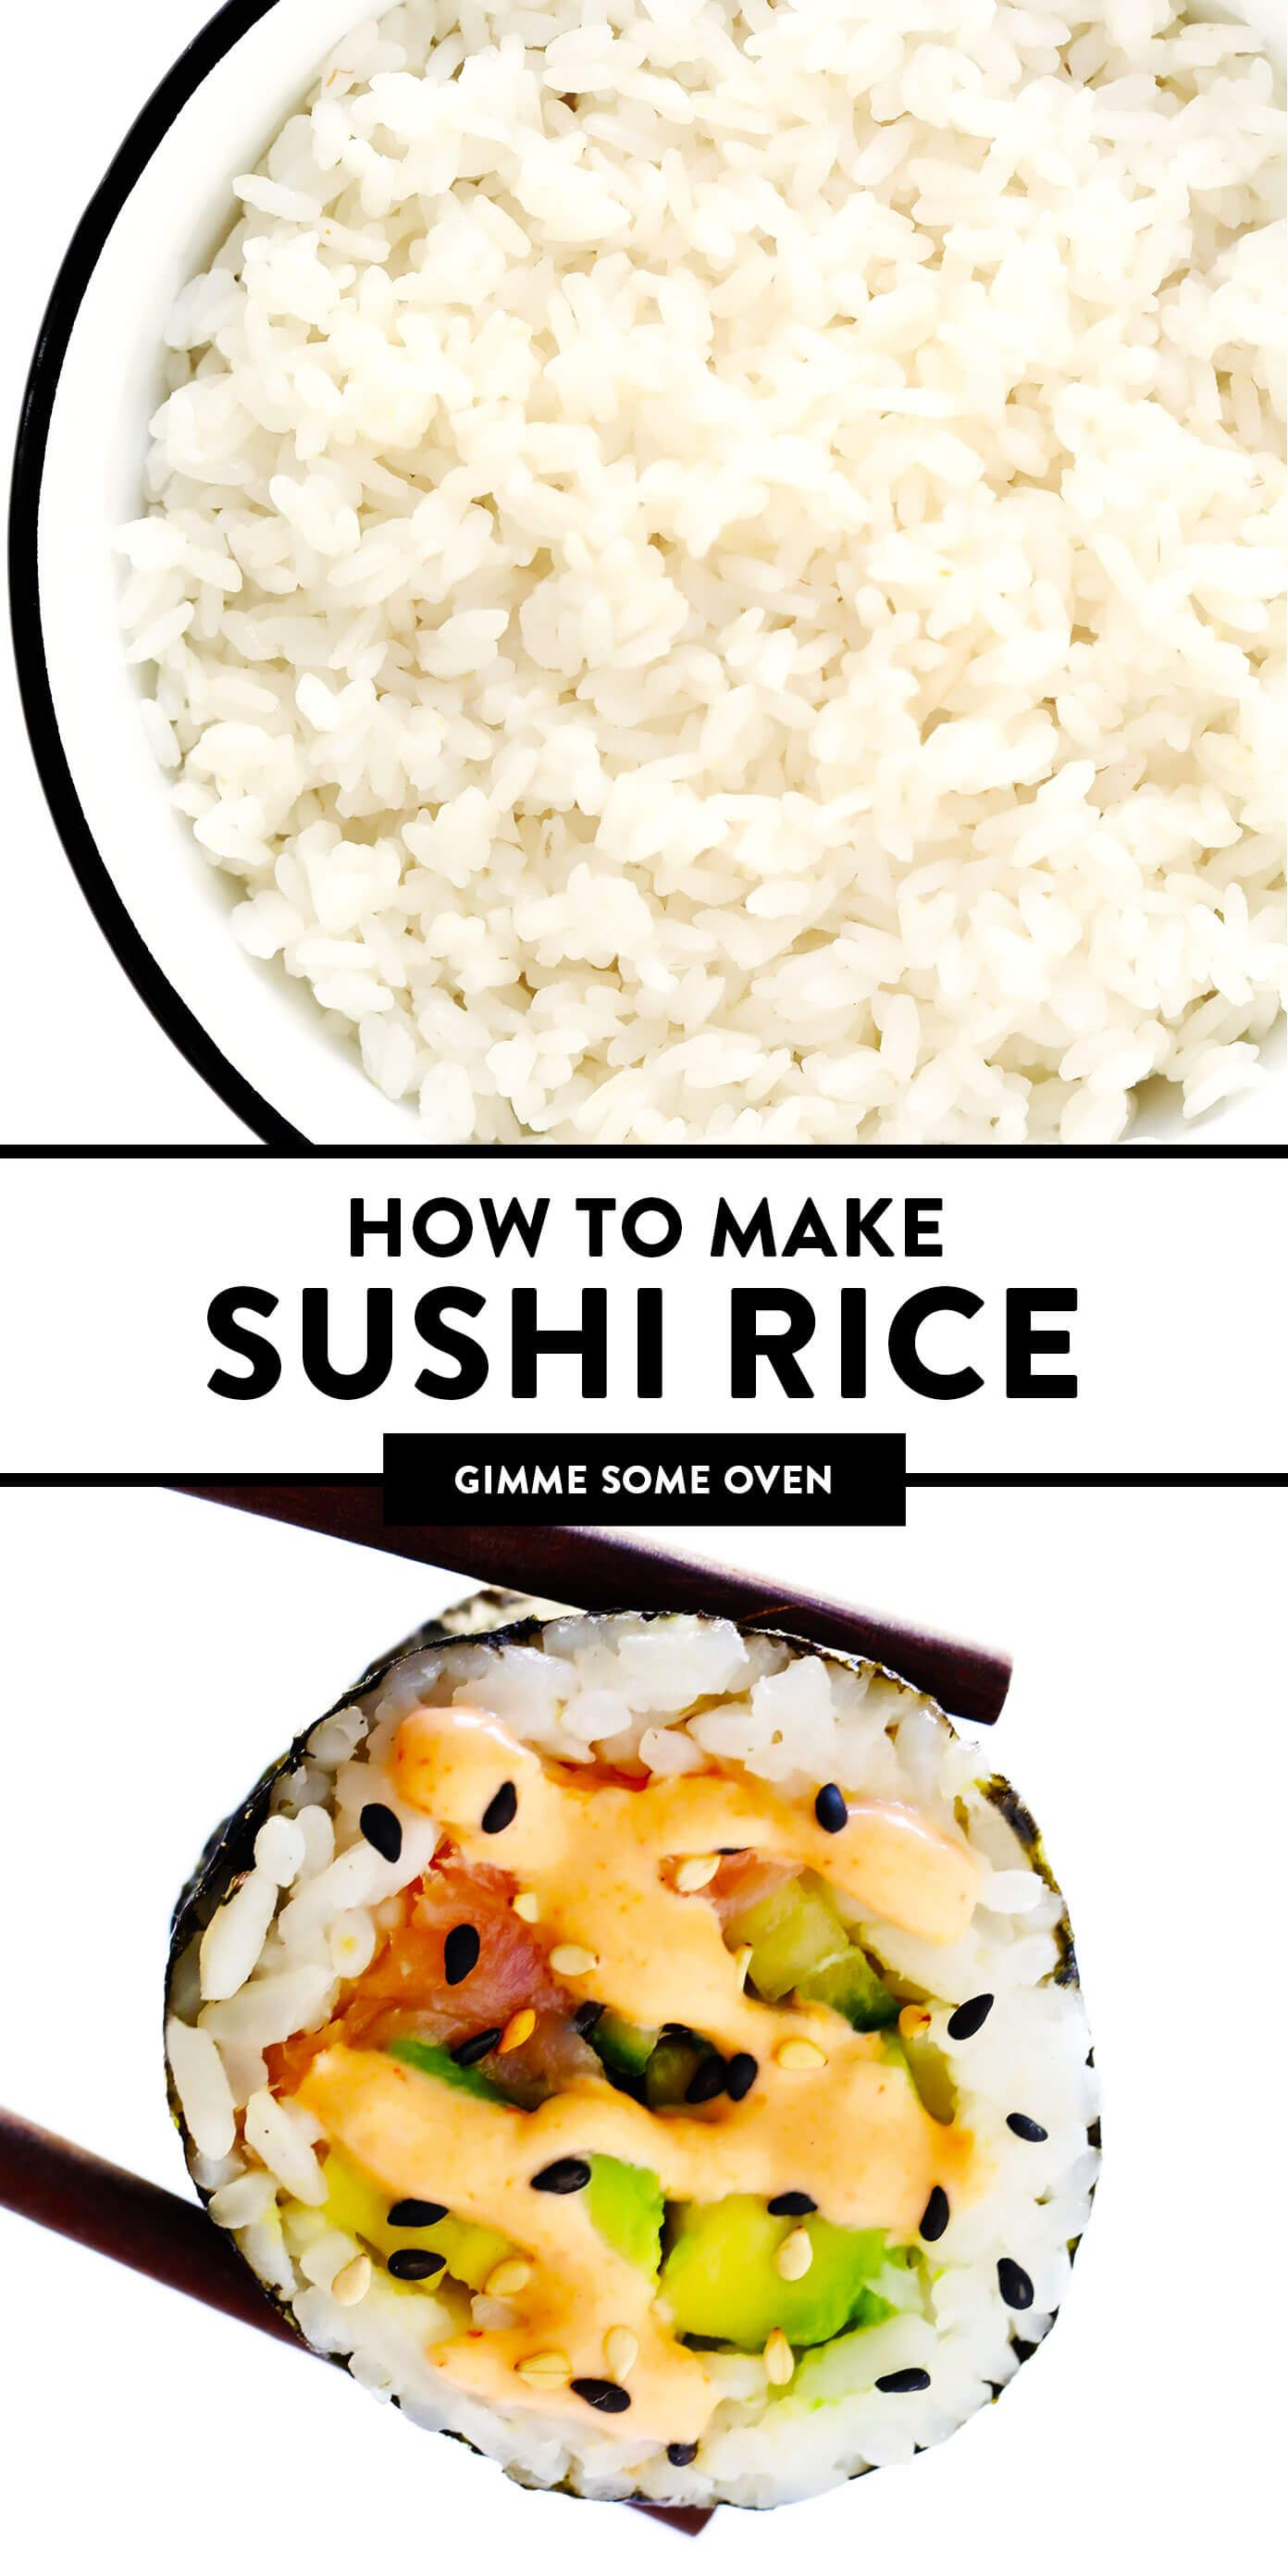 Sushi Rice Recipe Gimme Some Oven Recipe Sushi Rice Sushi Rice Recipes Recipes